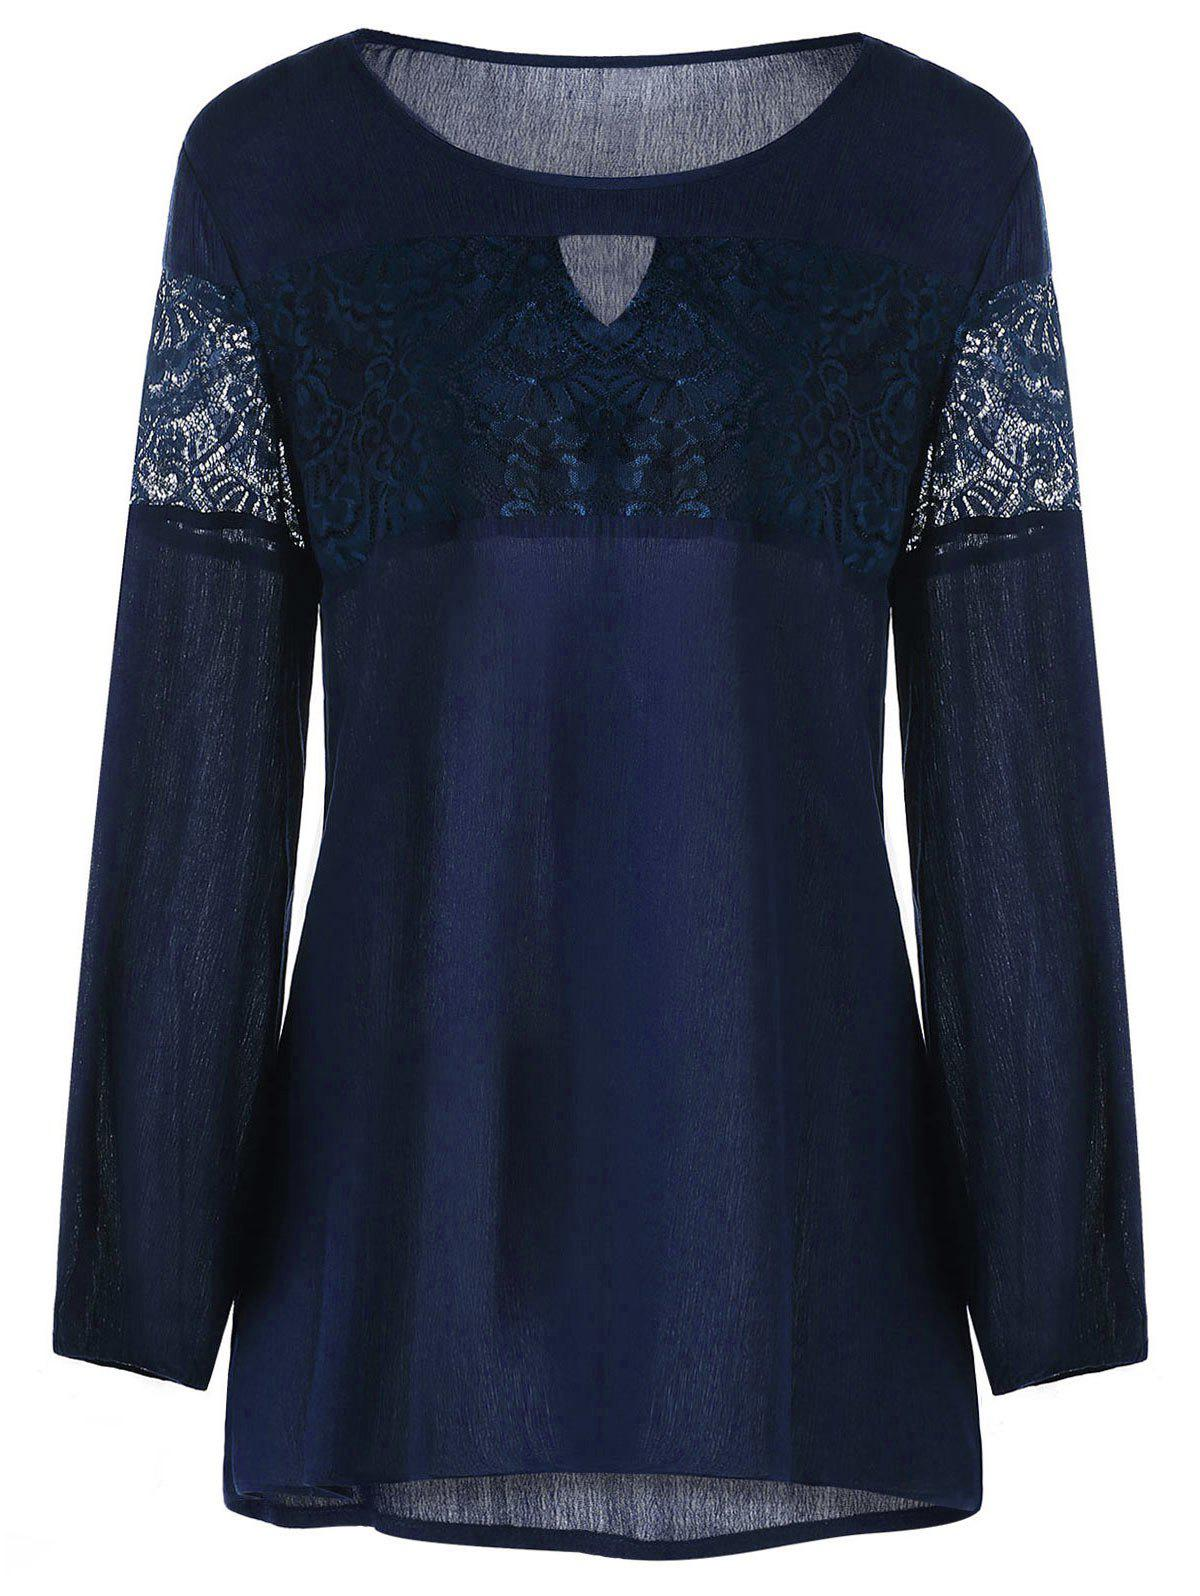 Plus Size Lace Trim Keyhole Neck BlouseWOMEN<br><br>Size: 5XL; Color: PURPLISH BLUE; Material: Rayon,Spandex; Shirt Length: Long; Sleeve Length: Full; Collar: Keyhole Neck; Style: Active; Season: Fall,Spring,Summer; Embellishment: Lace; Pattern Type: Solid; Weight: 0.2400kg; Package Contents: 1 x Blouse;